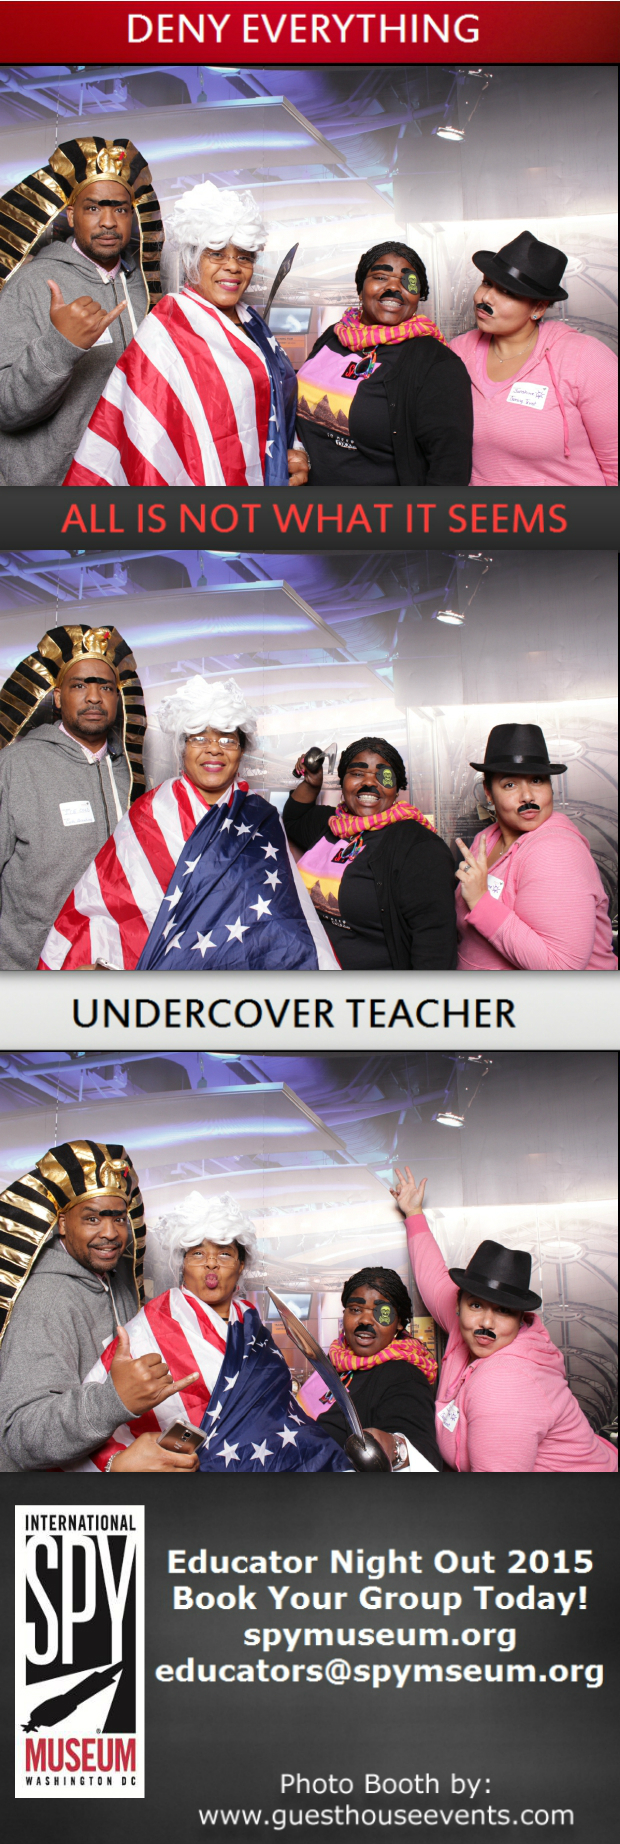 Guest House Events Photo Booth Spy Museum Educator Night Out (71).jpg